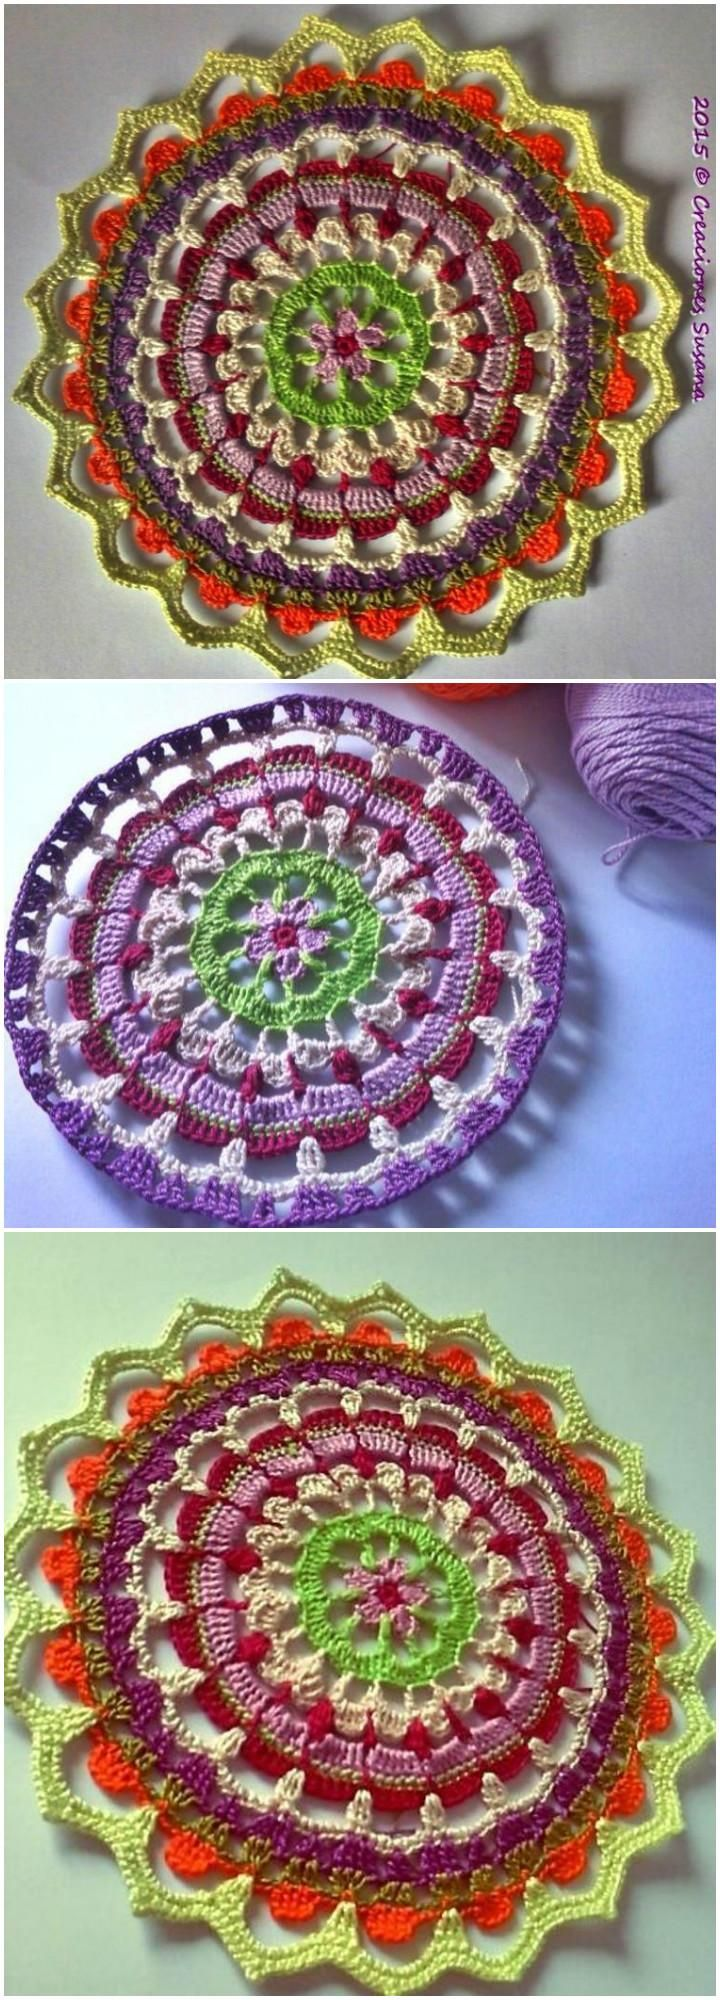 60+ Free Crochet Mandala Patterns - Page 3 of 12 | Mandalas, Mandala ...